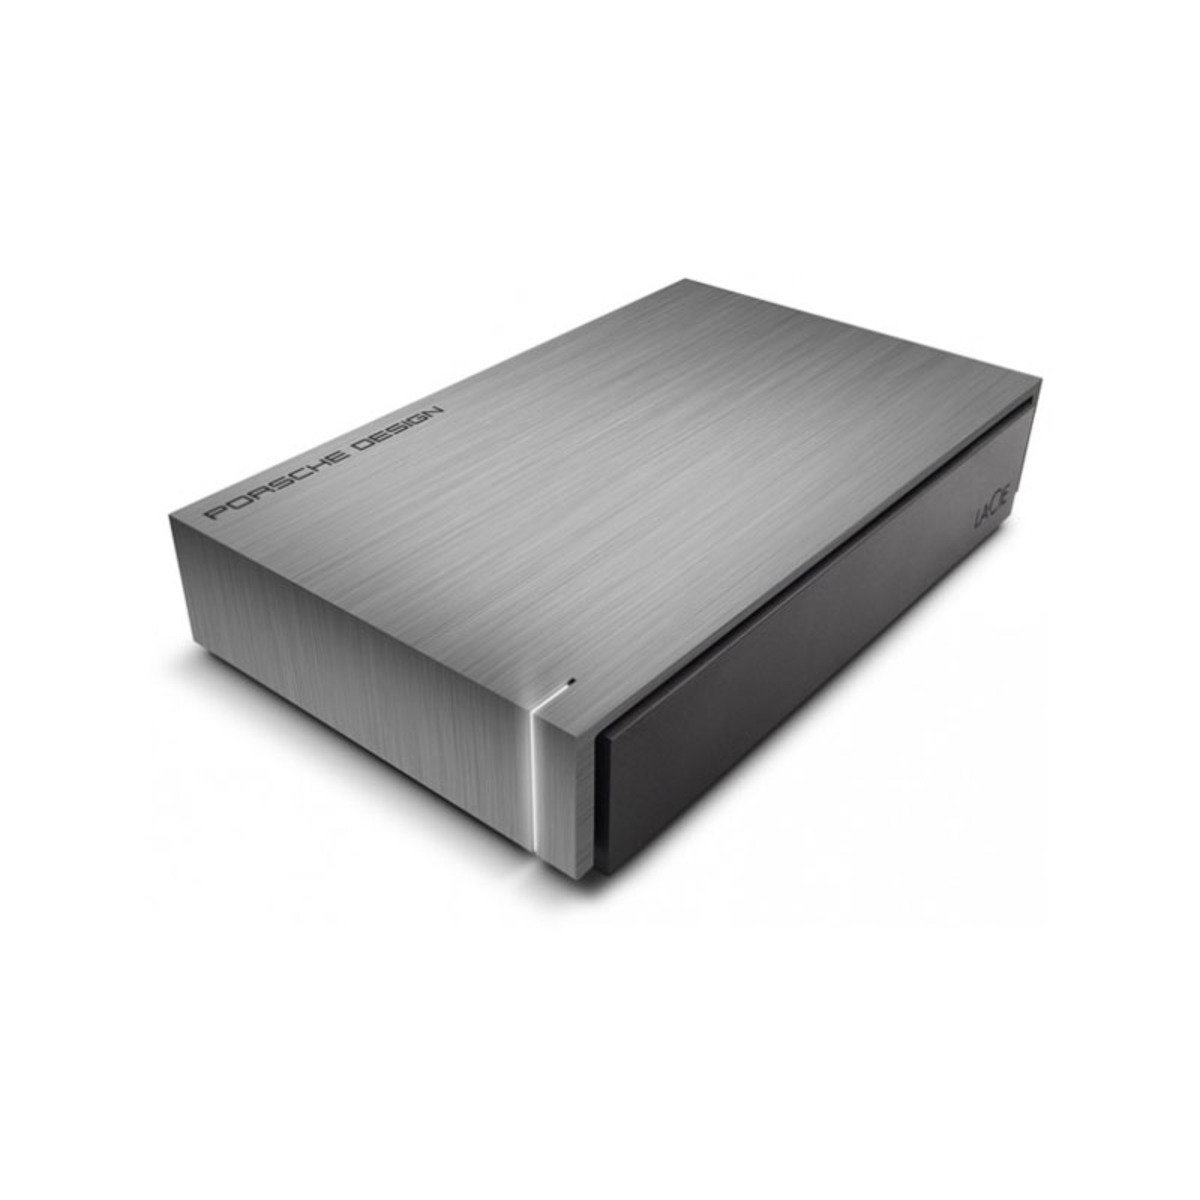 Porsche Design Desk 4TB USB3.0 3.5吋 外置硬碟 9000384